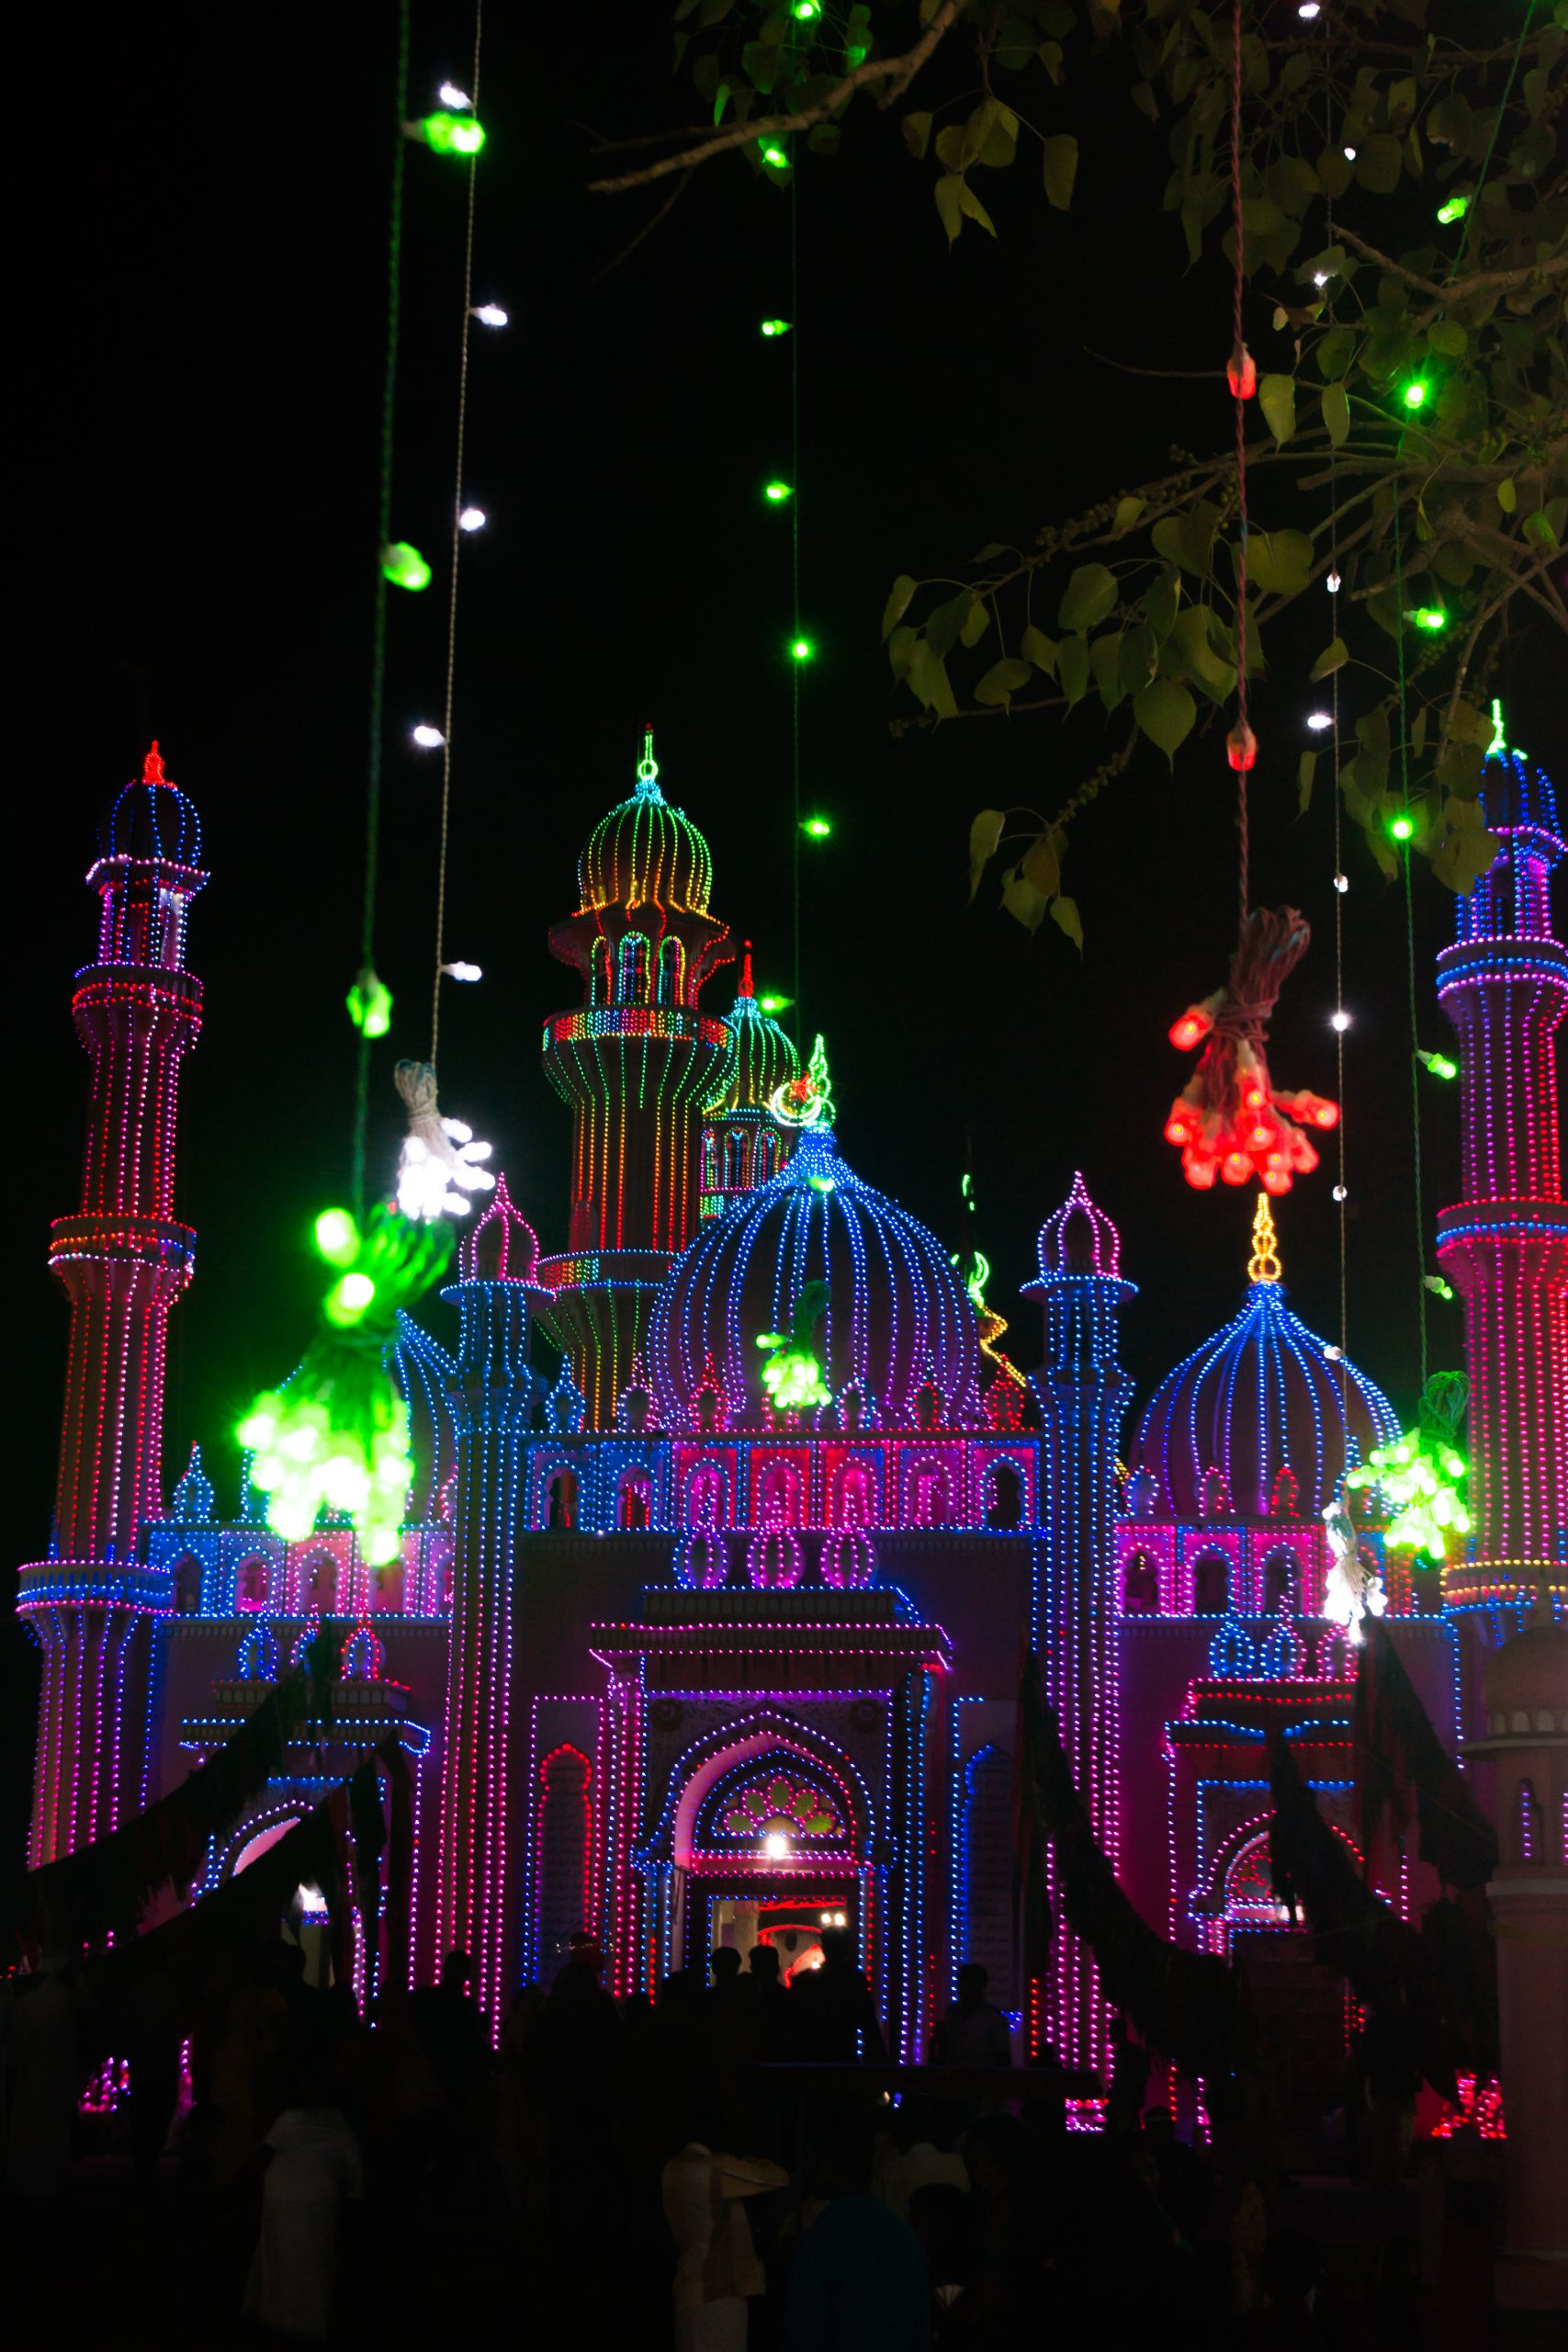 Lighting and decoration of Mosque